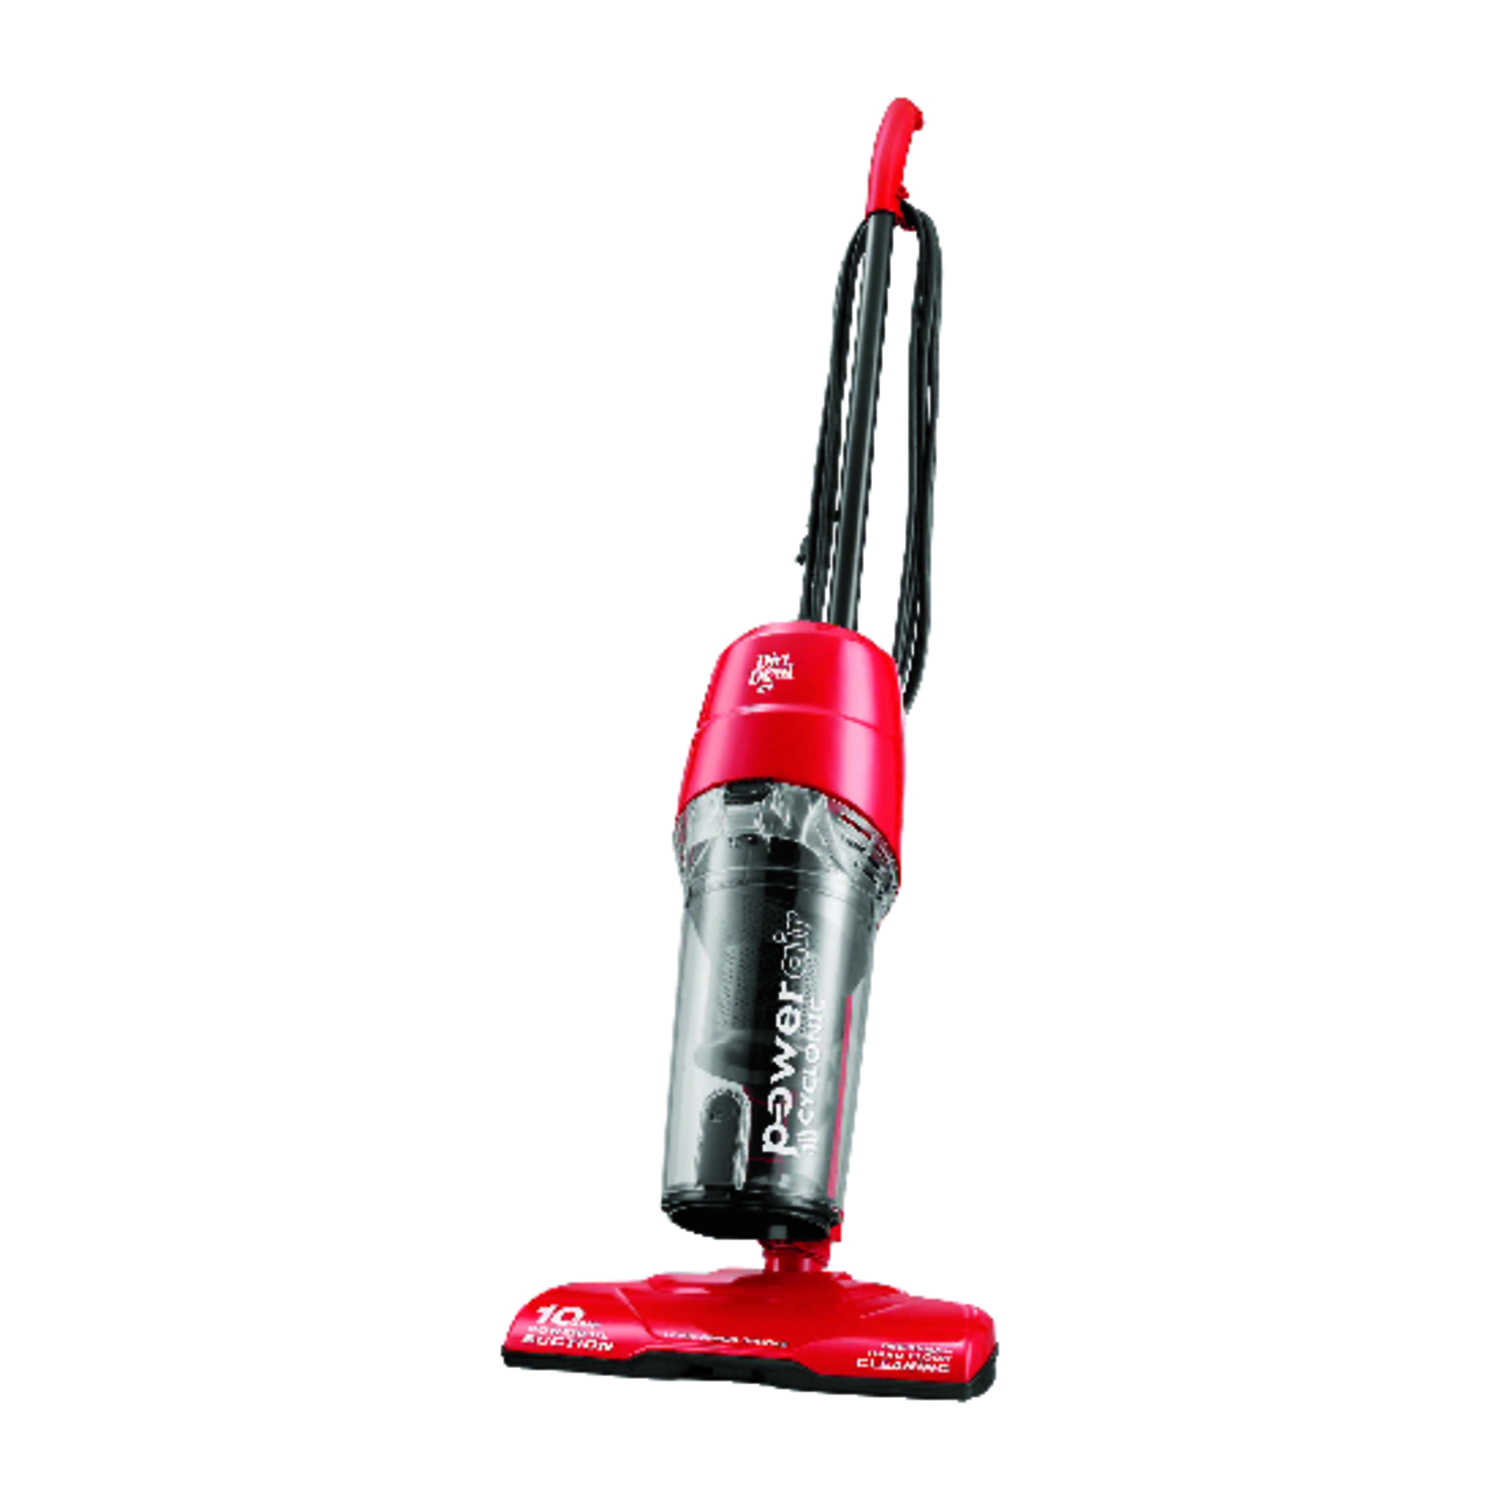 Dirt Devil  Power Air  Bagless  Stick Vacuum  10 amps Cyclonic  Red